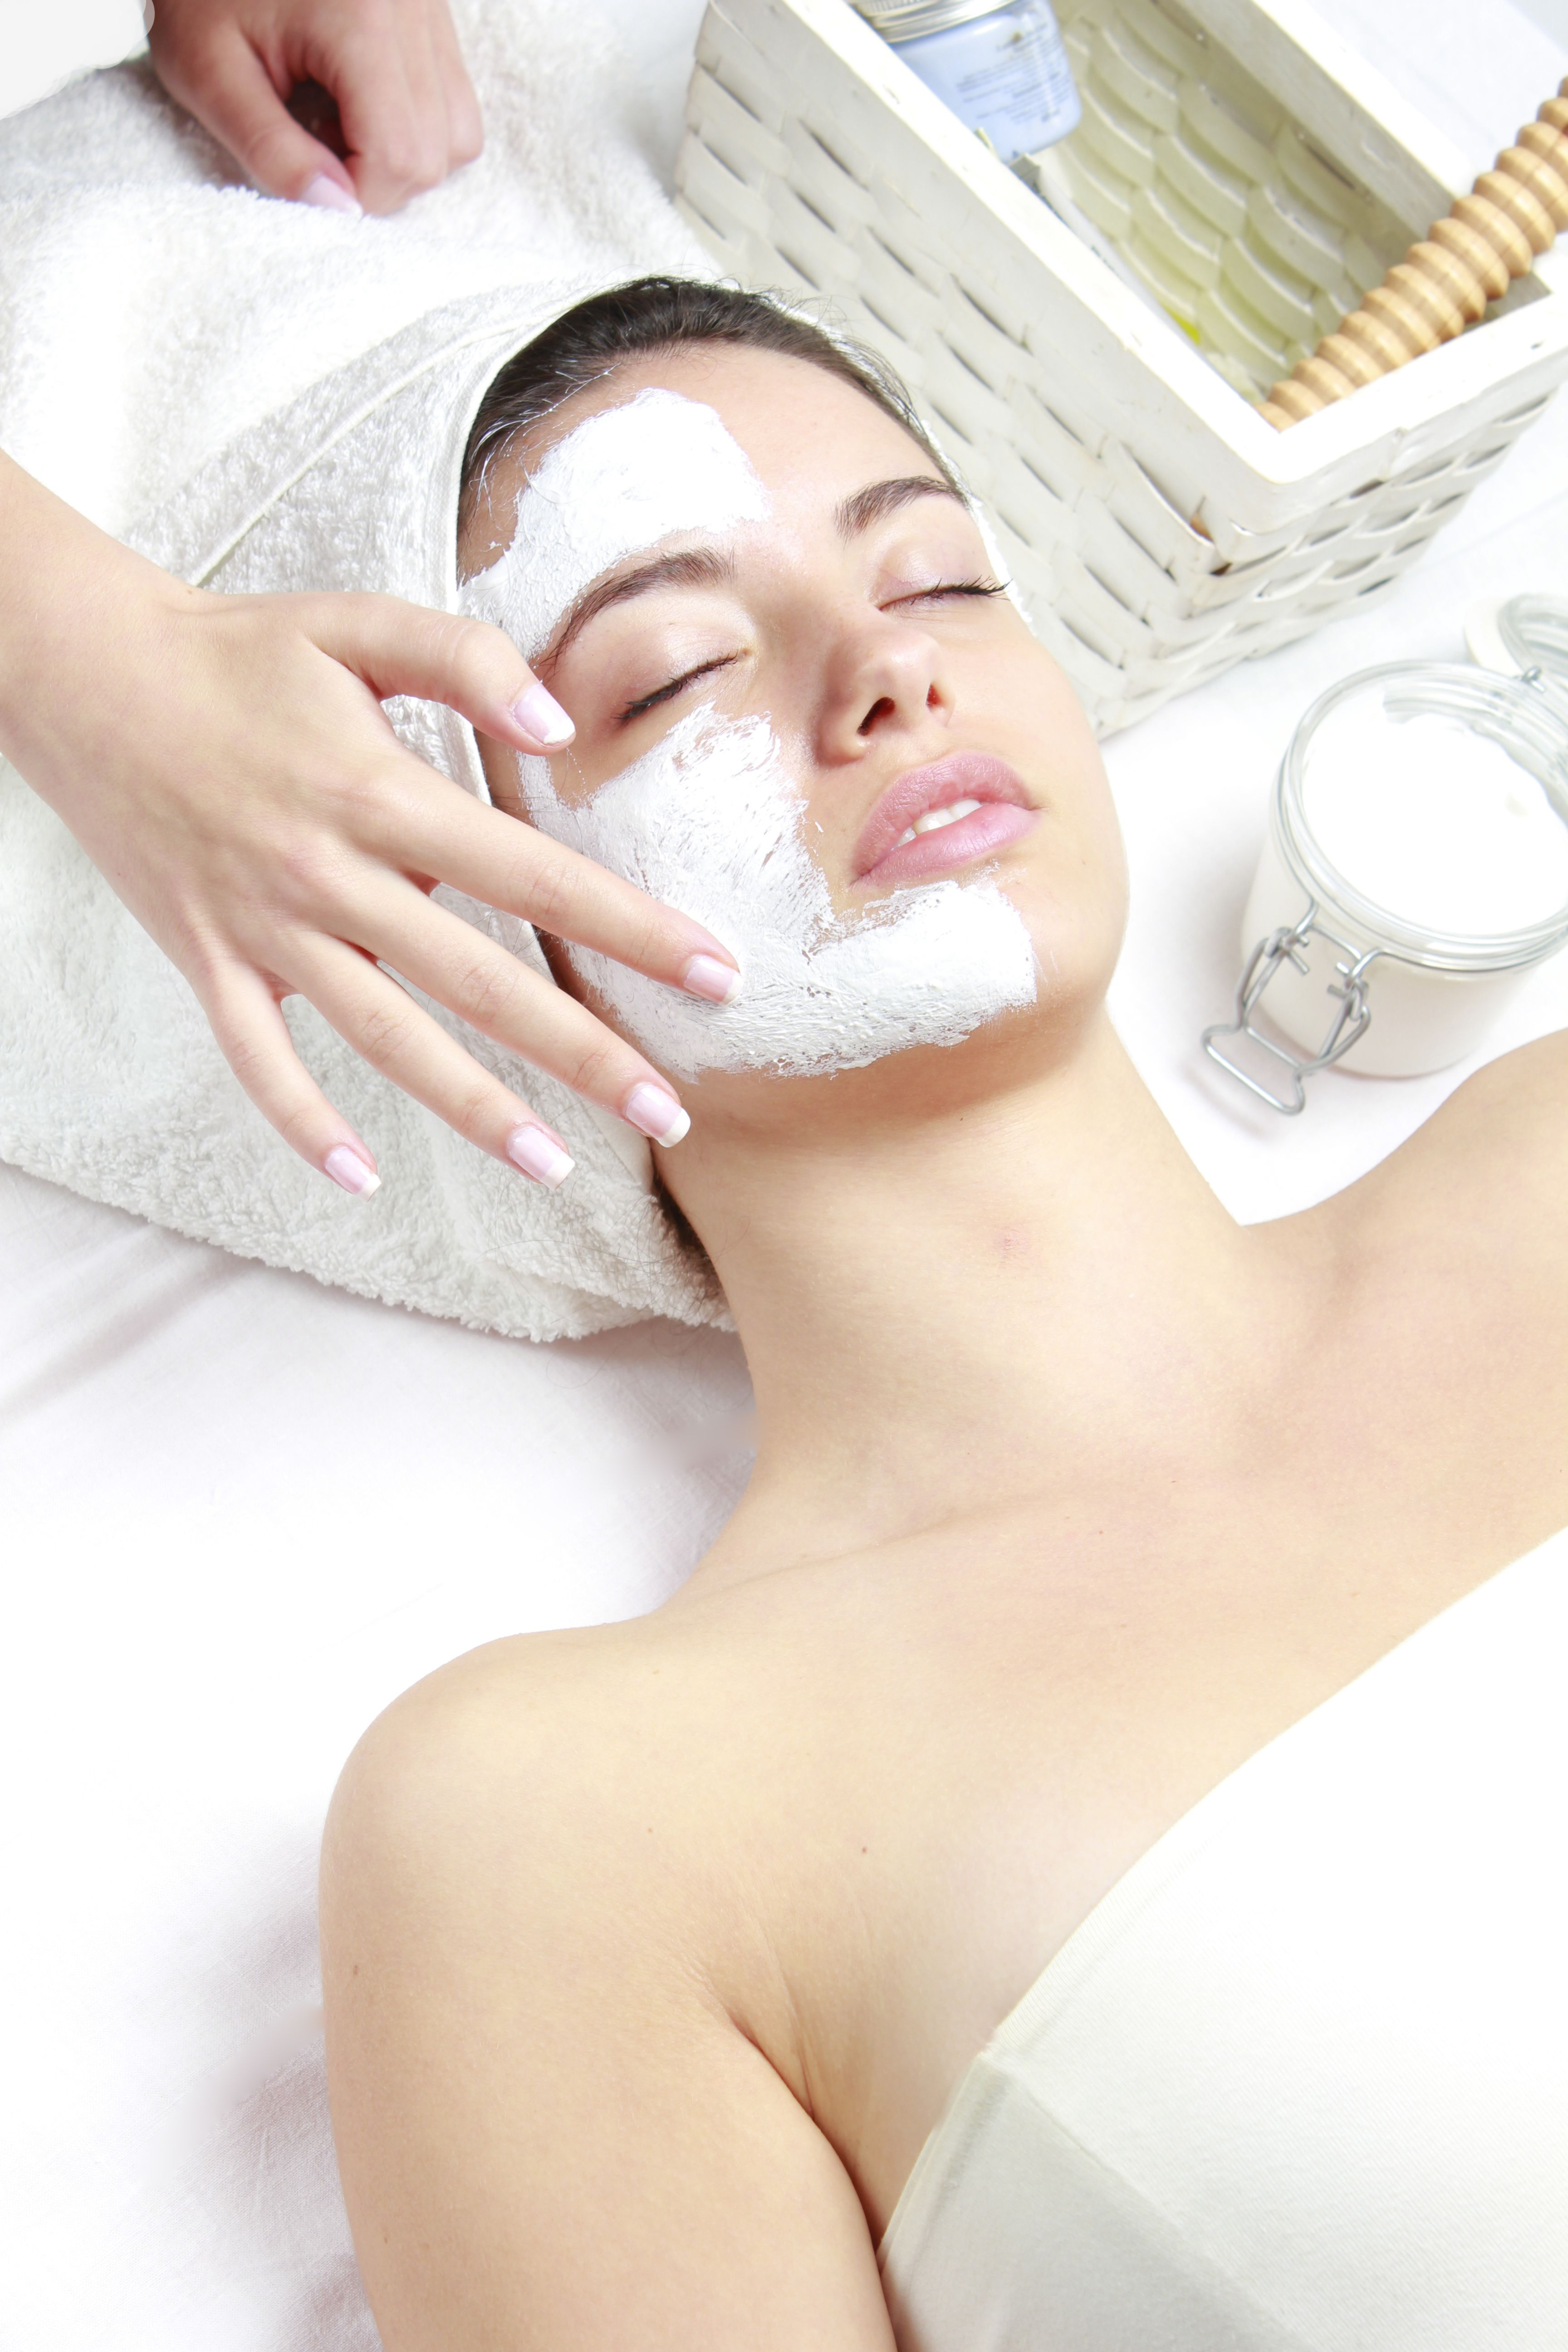 Best Esthetician Schools In The Usa How To Become An Aesthetician Esthetician School Esthetician Facial Spa